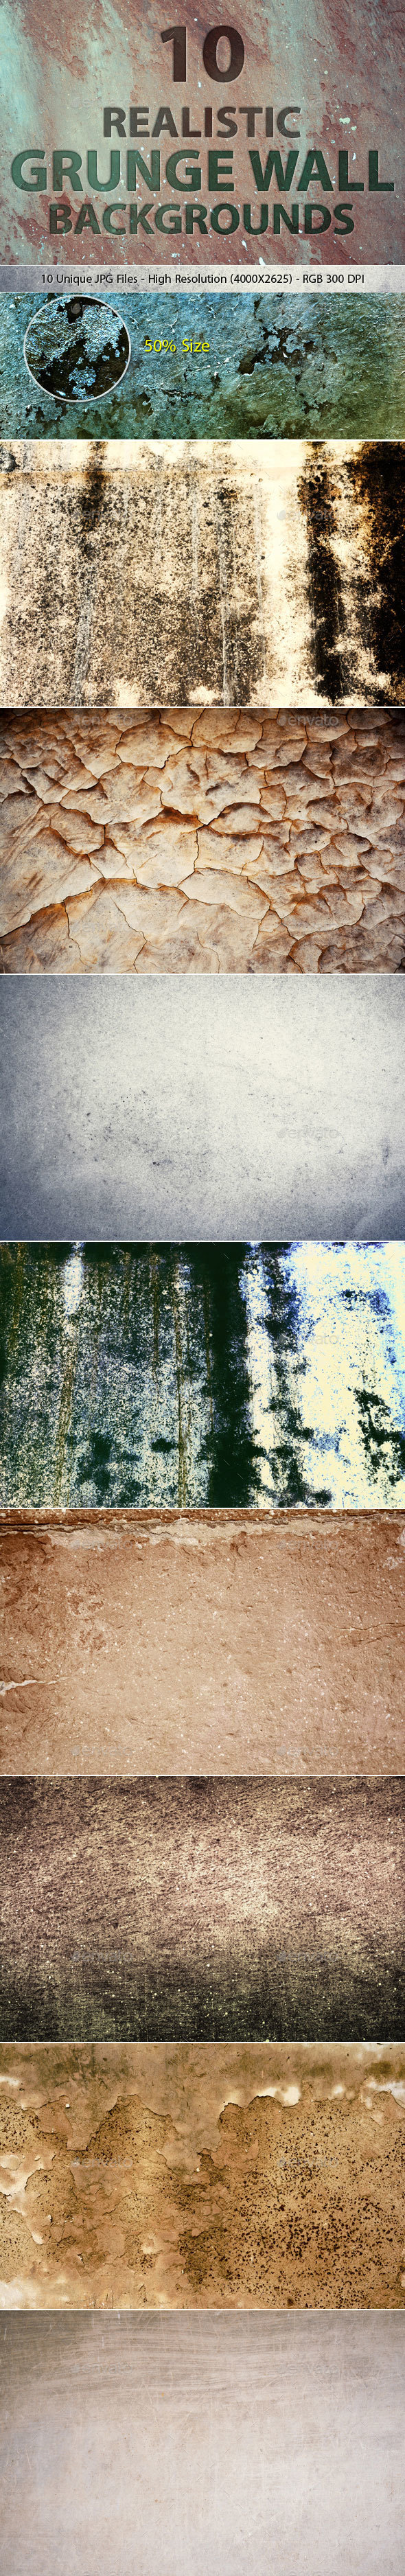 Realistic Grunge Wall Backgrounds - Backgrounds Graphics